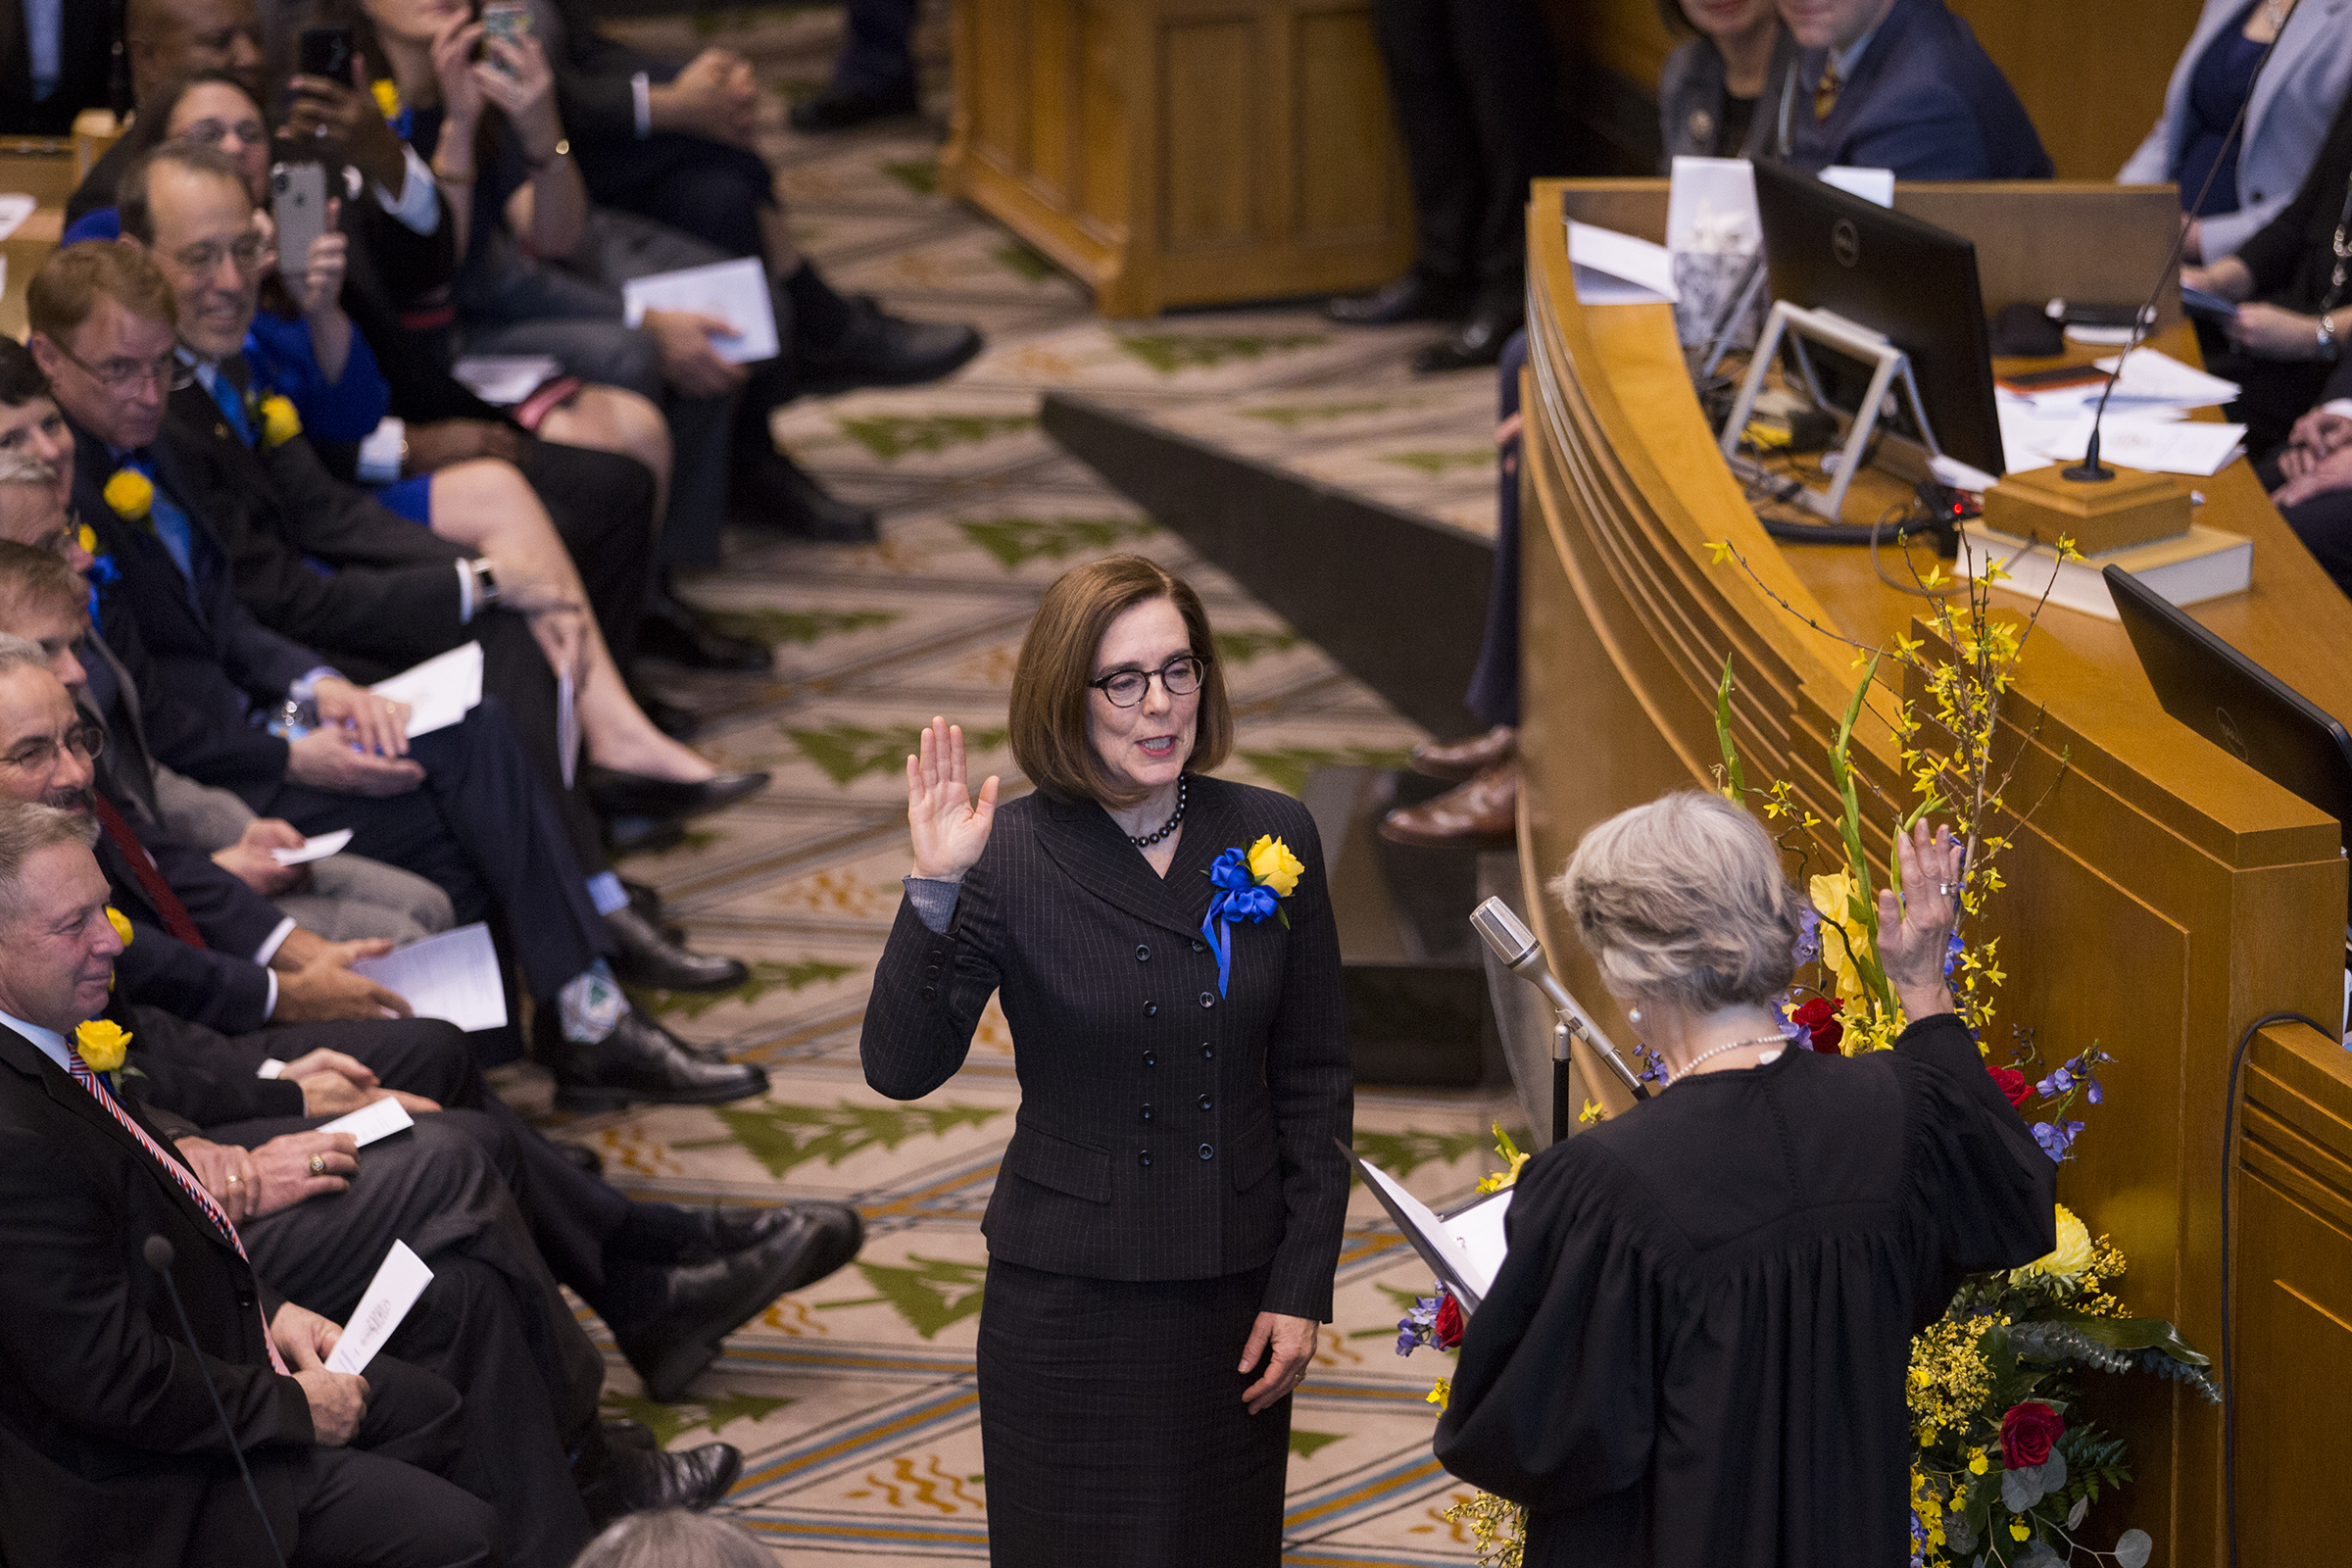 Governor Kate Brown is sworn in at her inauguration at the Oregon State Capitol in Salem, Oregon on Jan. 14, 2019.